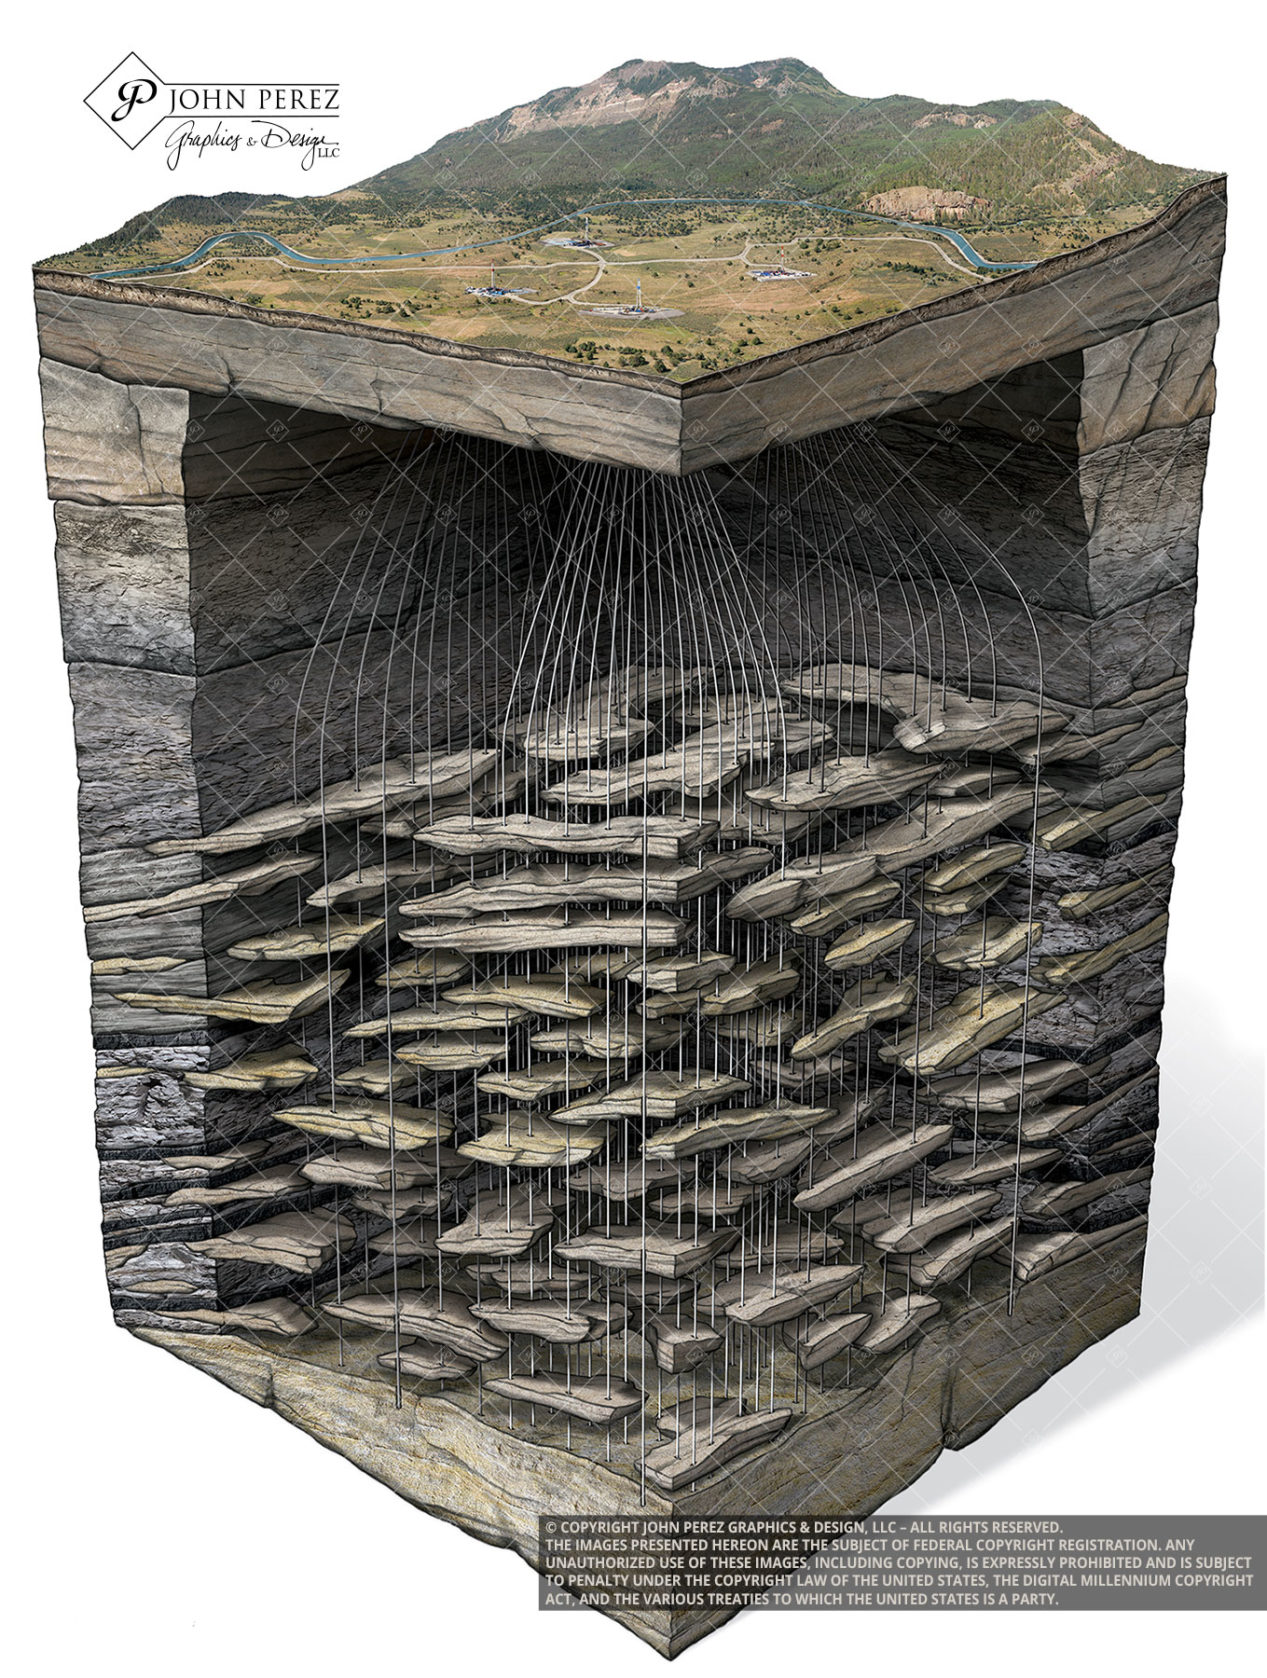 Piceance Basin Oil Gas Schematic Illustration, john perez graphics, geologic art